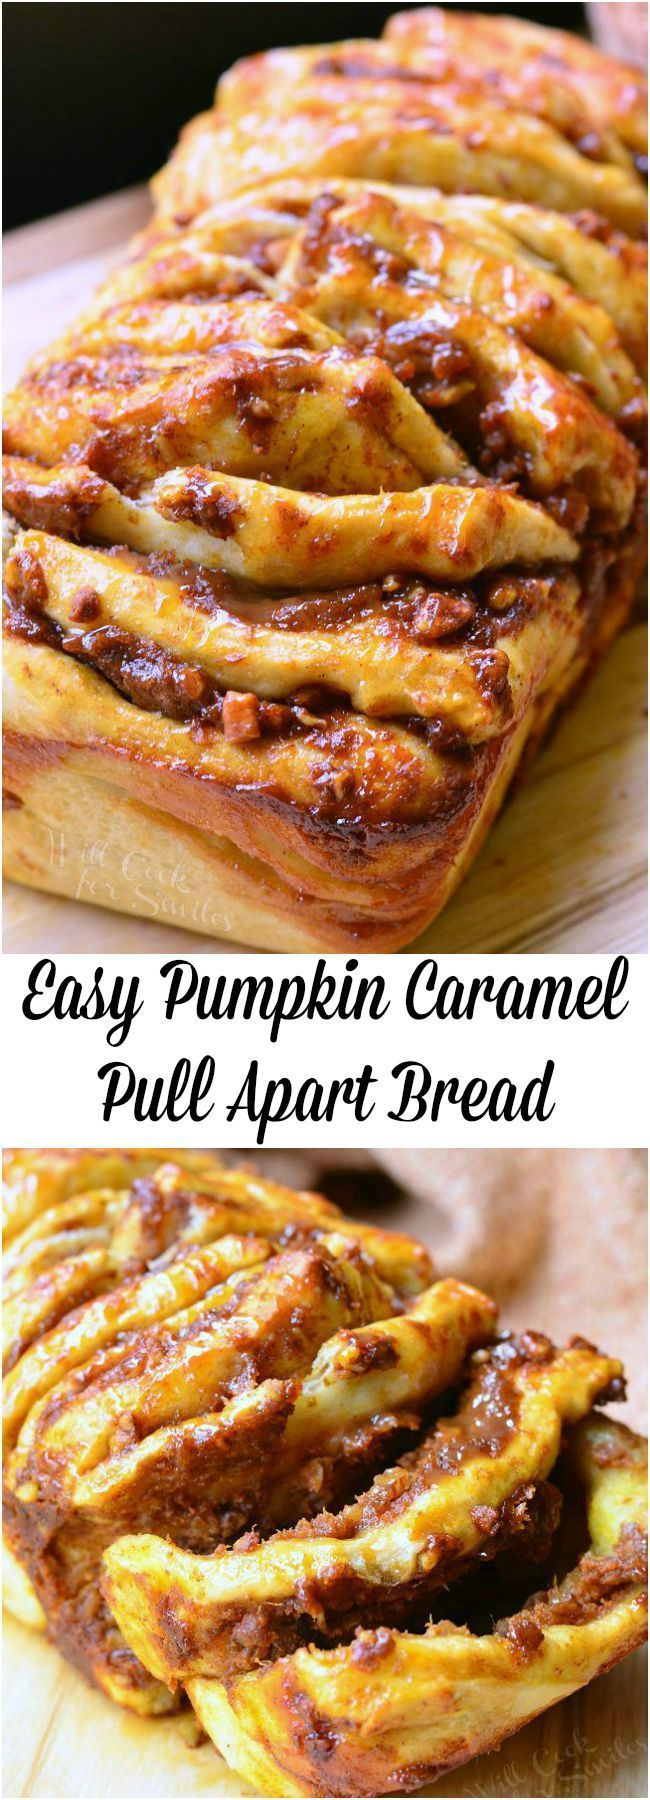 Easy Pumpkin Caramel Pull Apart Bread is super easy to make and an incredibly tasty pumpkin treat! #bread #pumpkin #easy